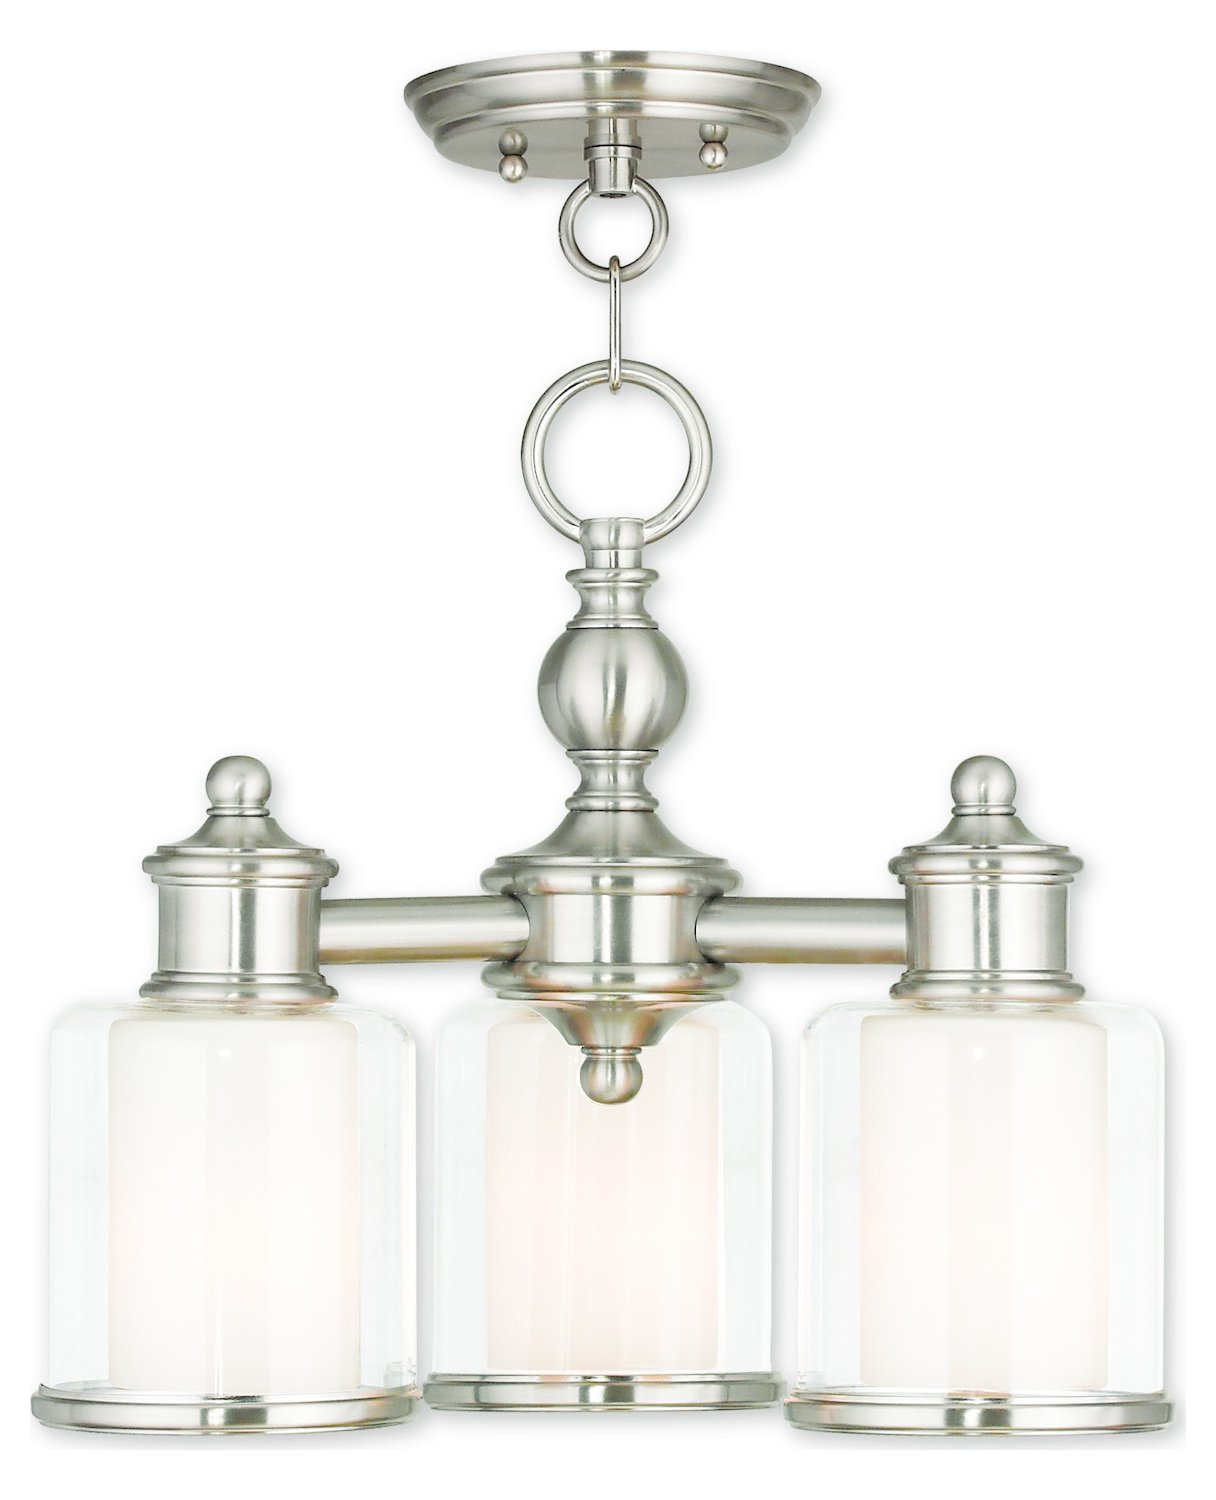 Middlebush Brushed Nickel Convertible Mini Chandelier/Ceiling Mount